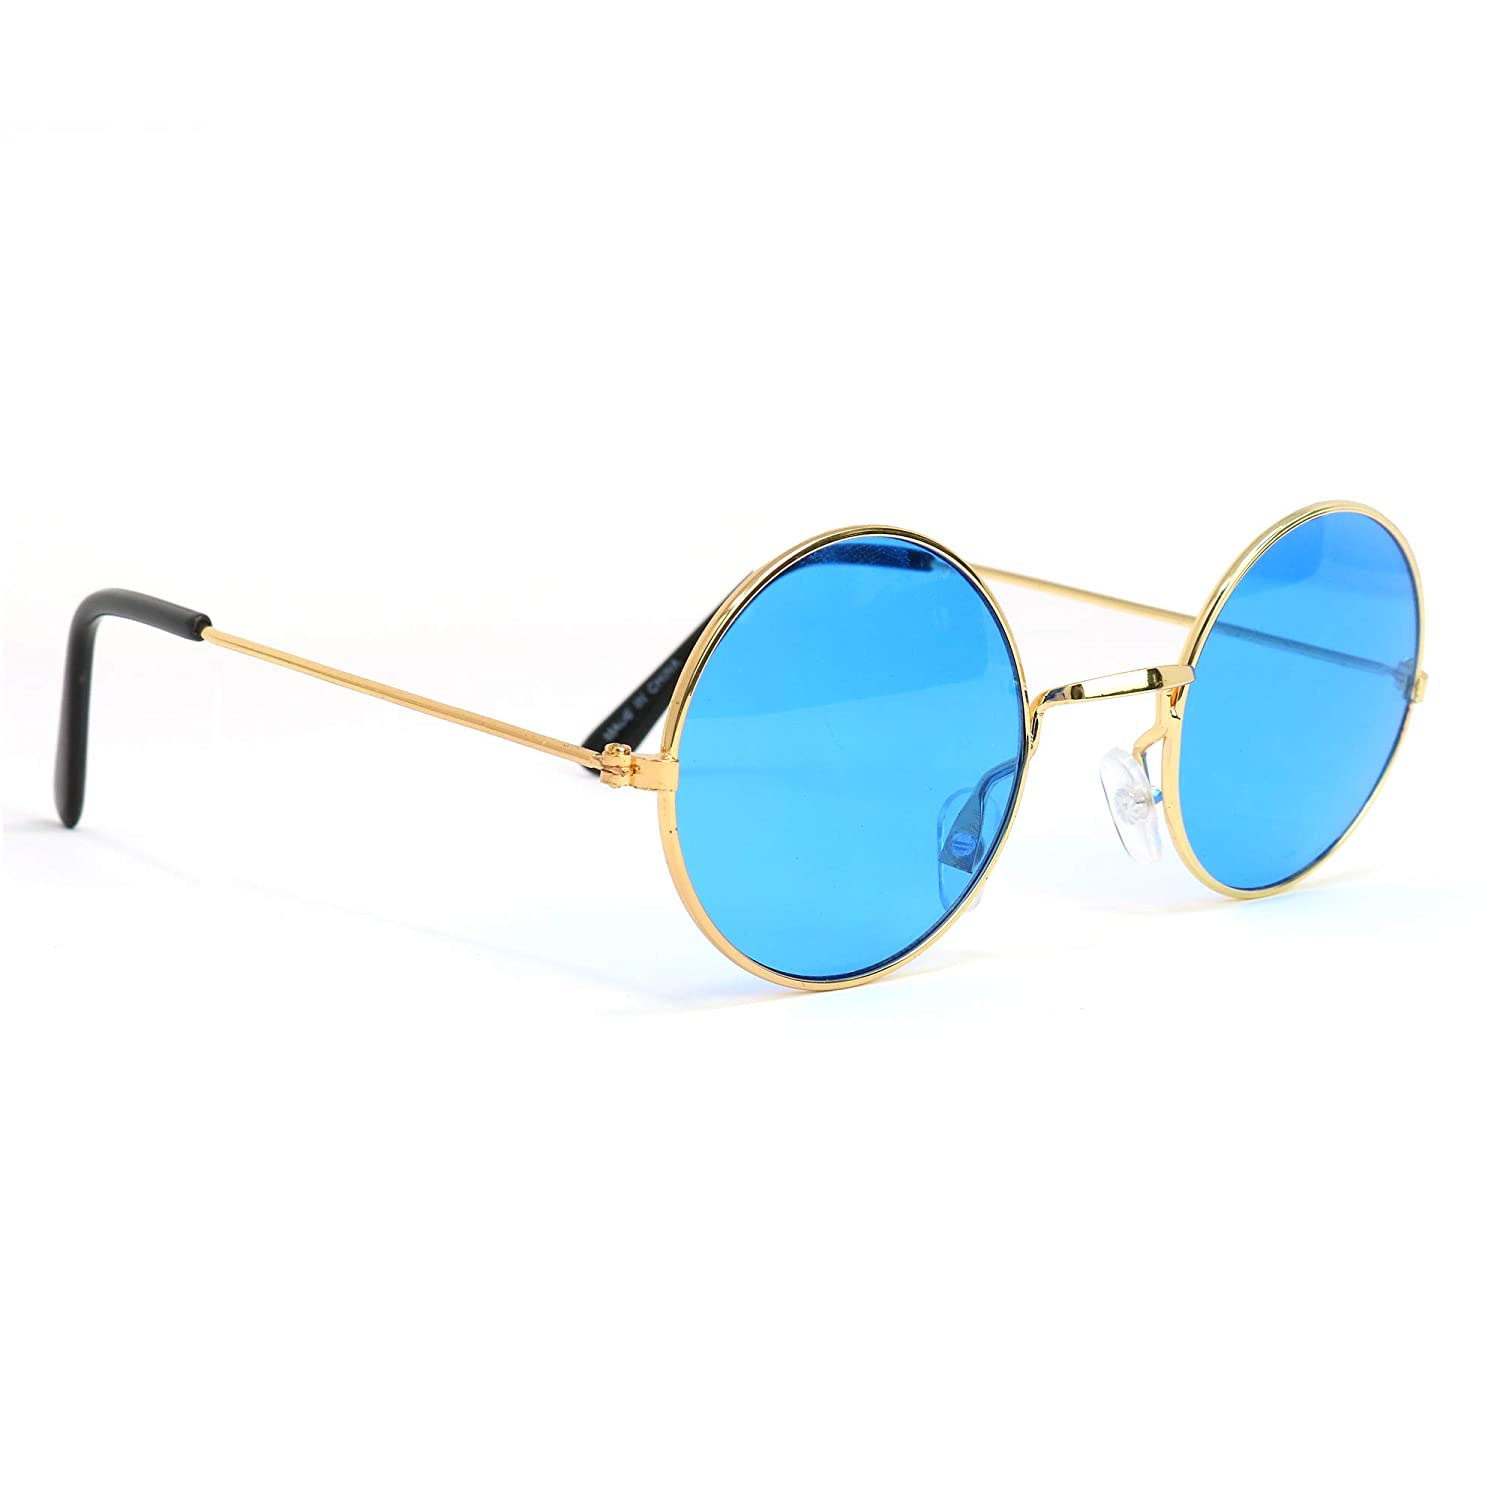 f0f6483c67 Amazon.com  Skeleteen John Lennon Hippie Sunglasses - Blue 60 s Style  Circle Glasses - 1 Pair  Toys   Games